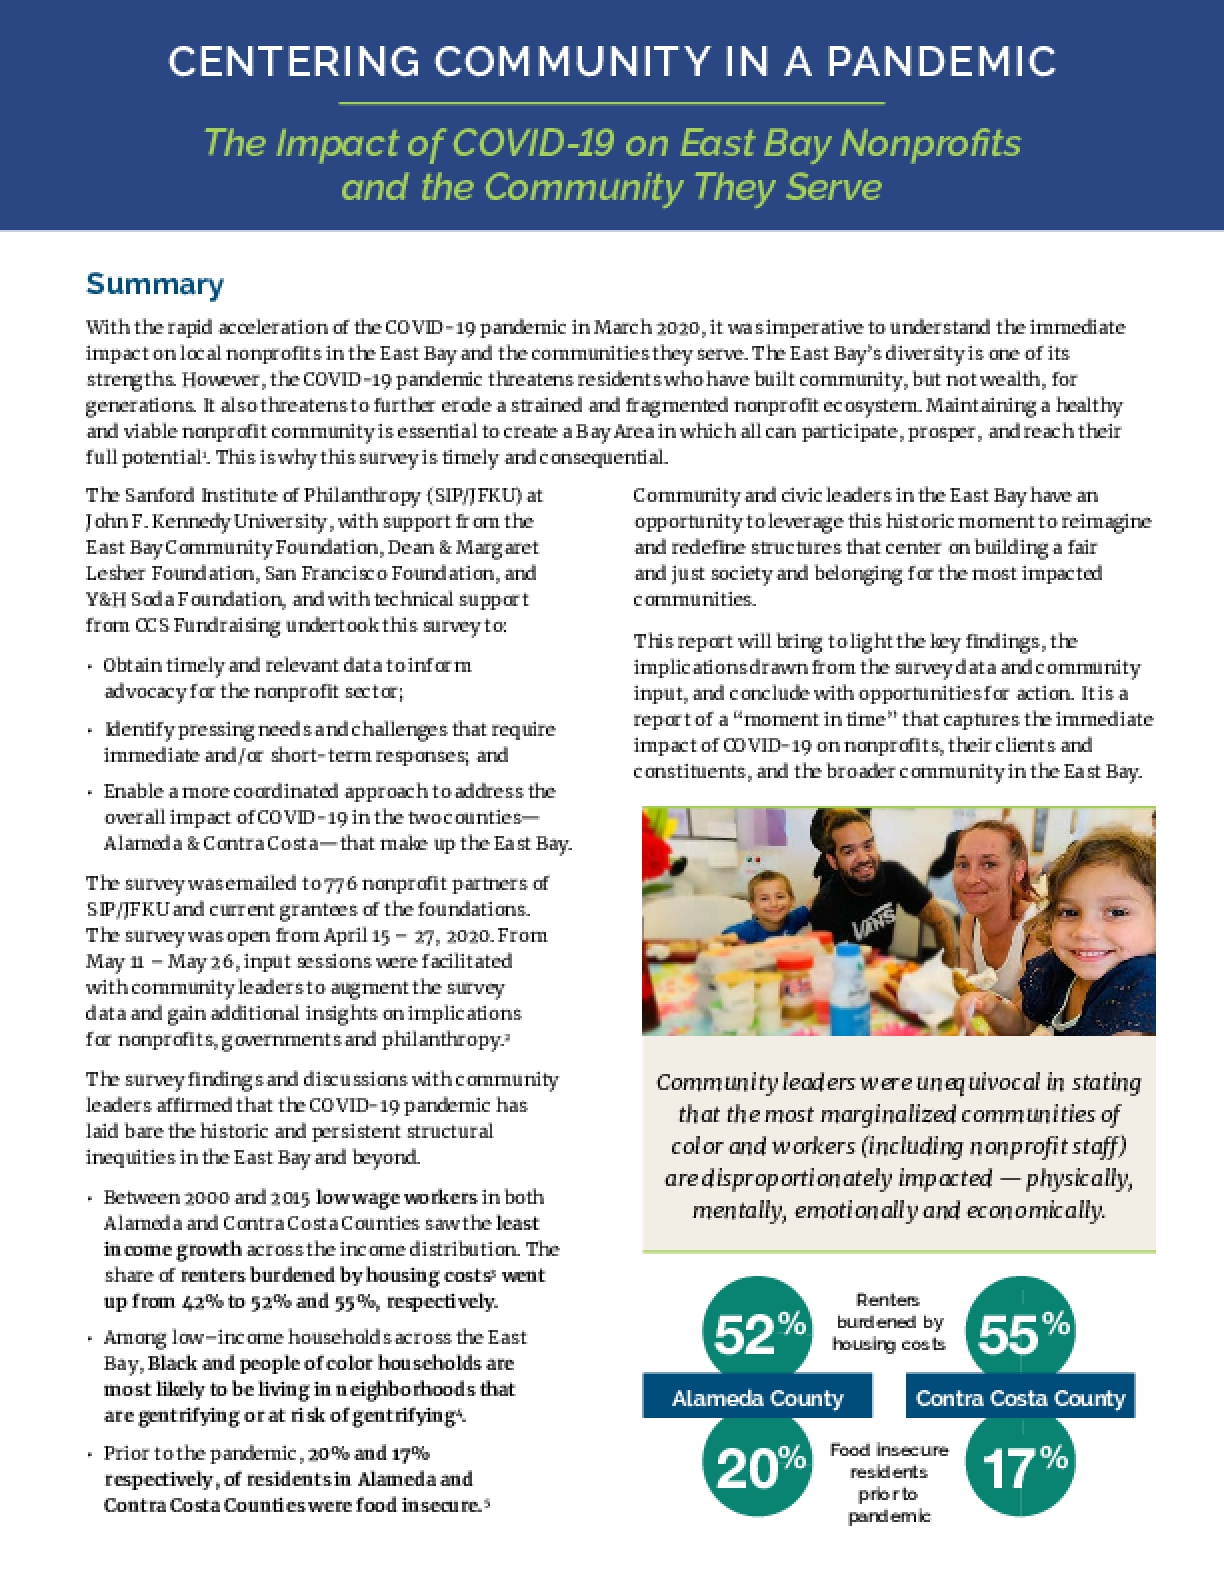 Centering Community in a Pandemic: The Impact of COVID-19 on East Bay Nonprofits and the Community They Serve